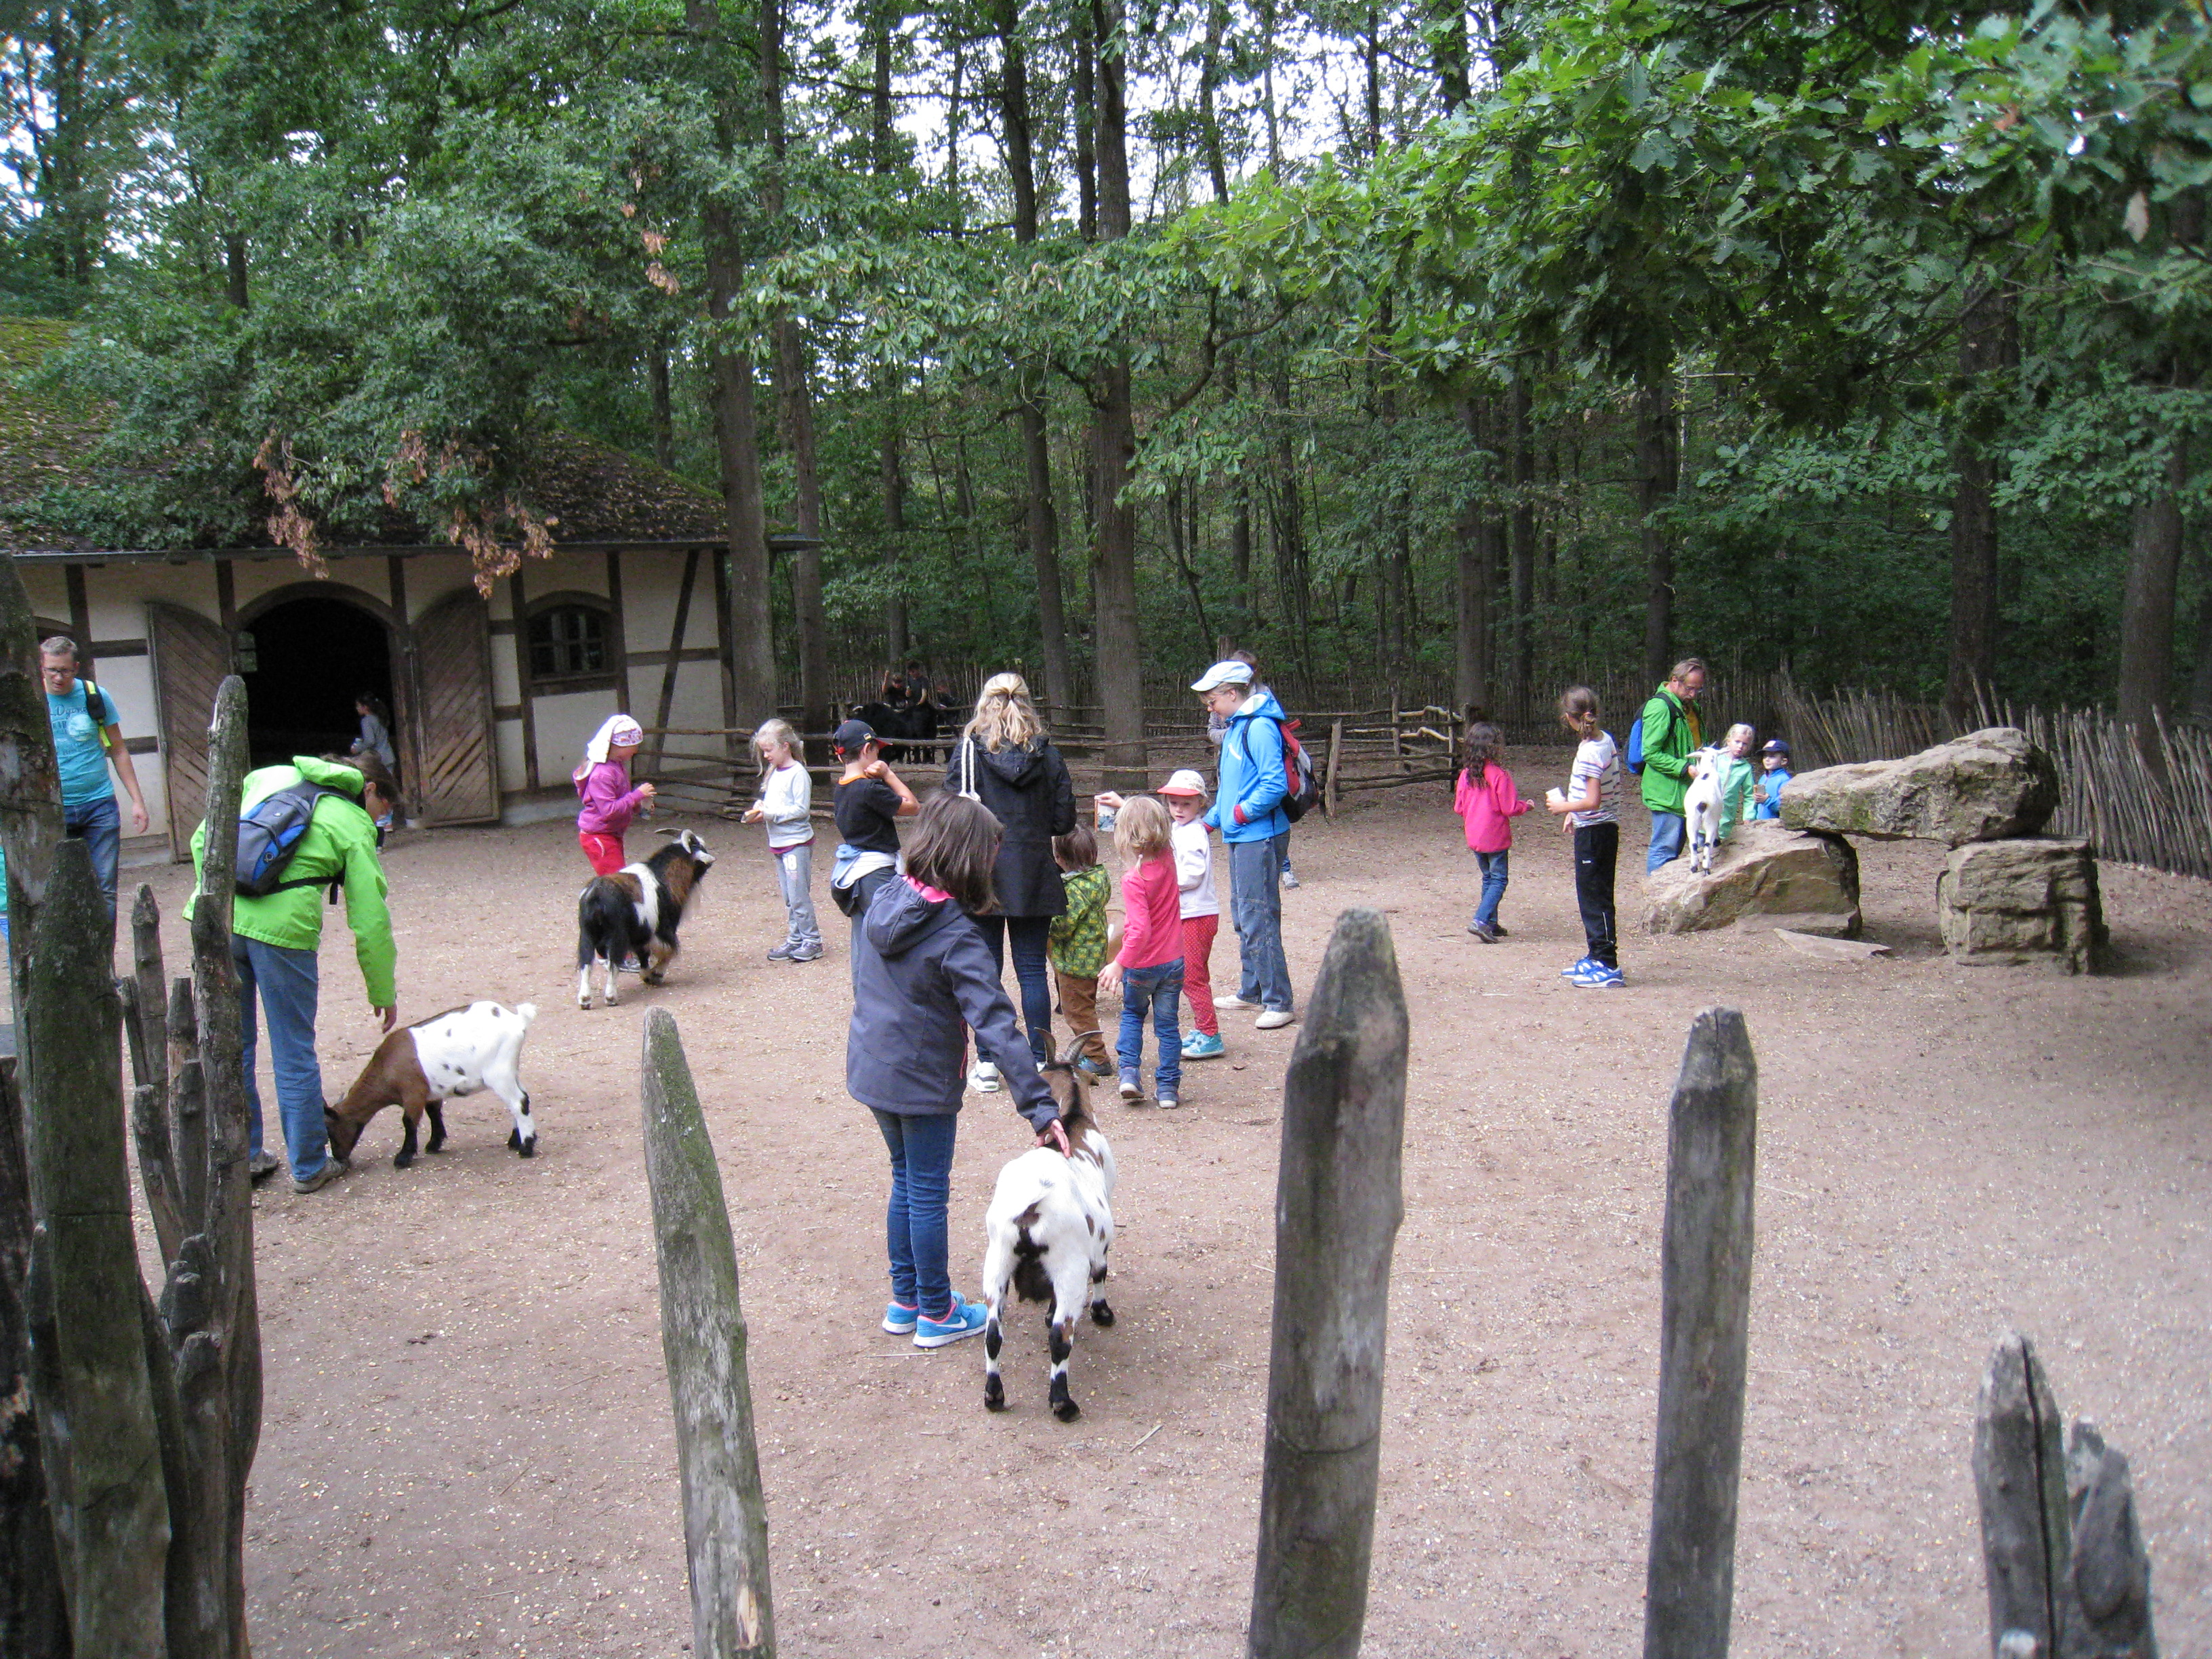 Wildparkbesuch - Bad Mergentheim(100)